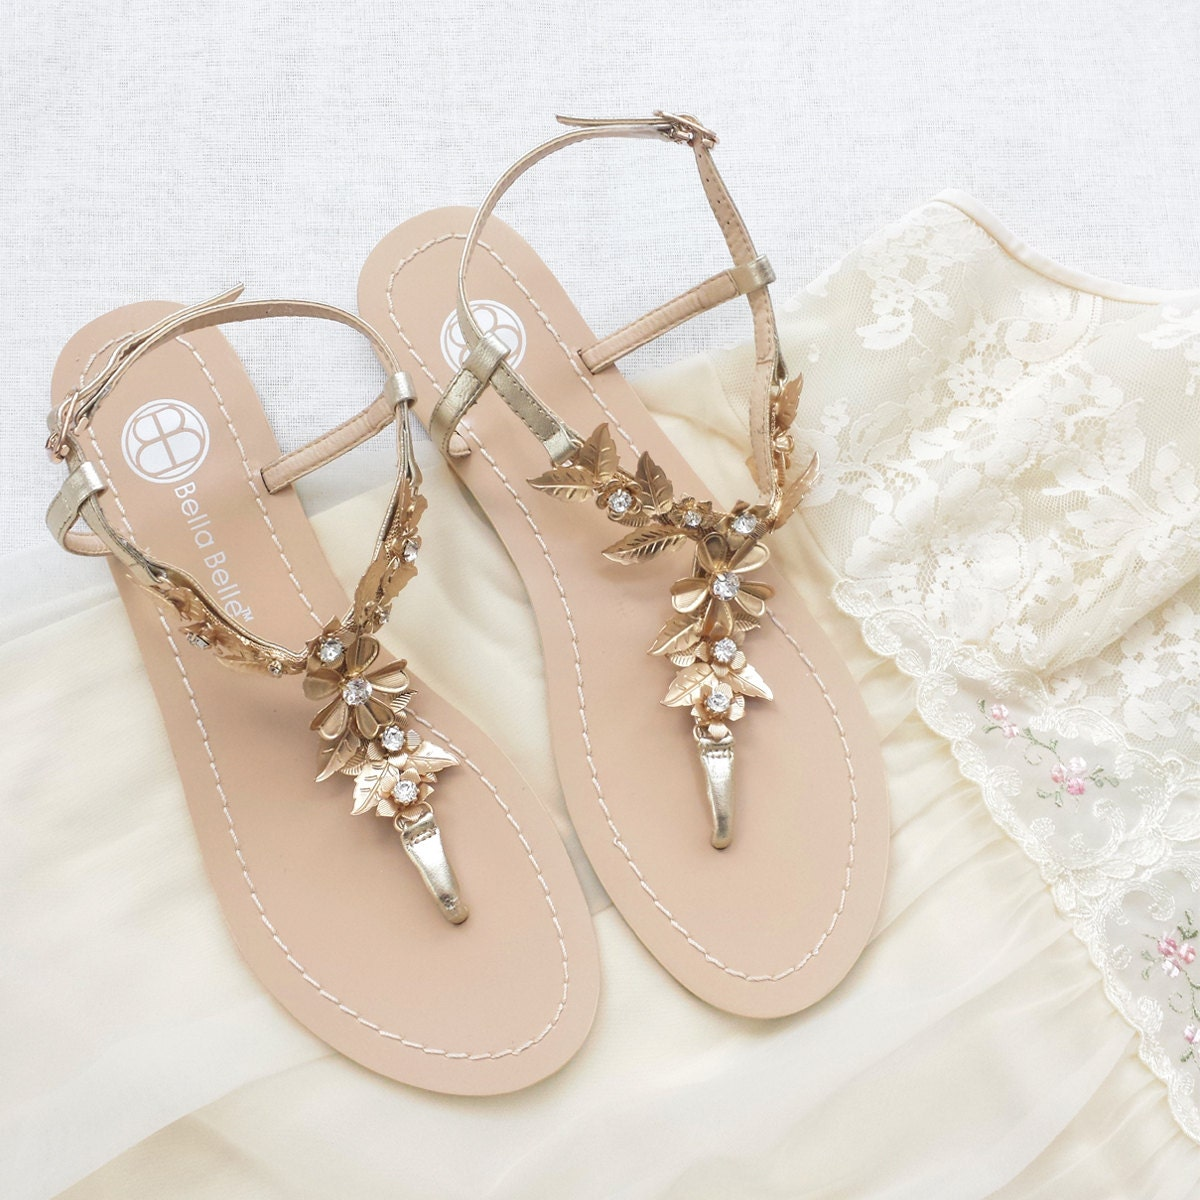 Wedding Wedding Slippers bohemian wedding sandals shoes with gold brass leaves and